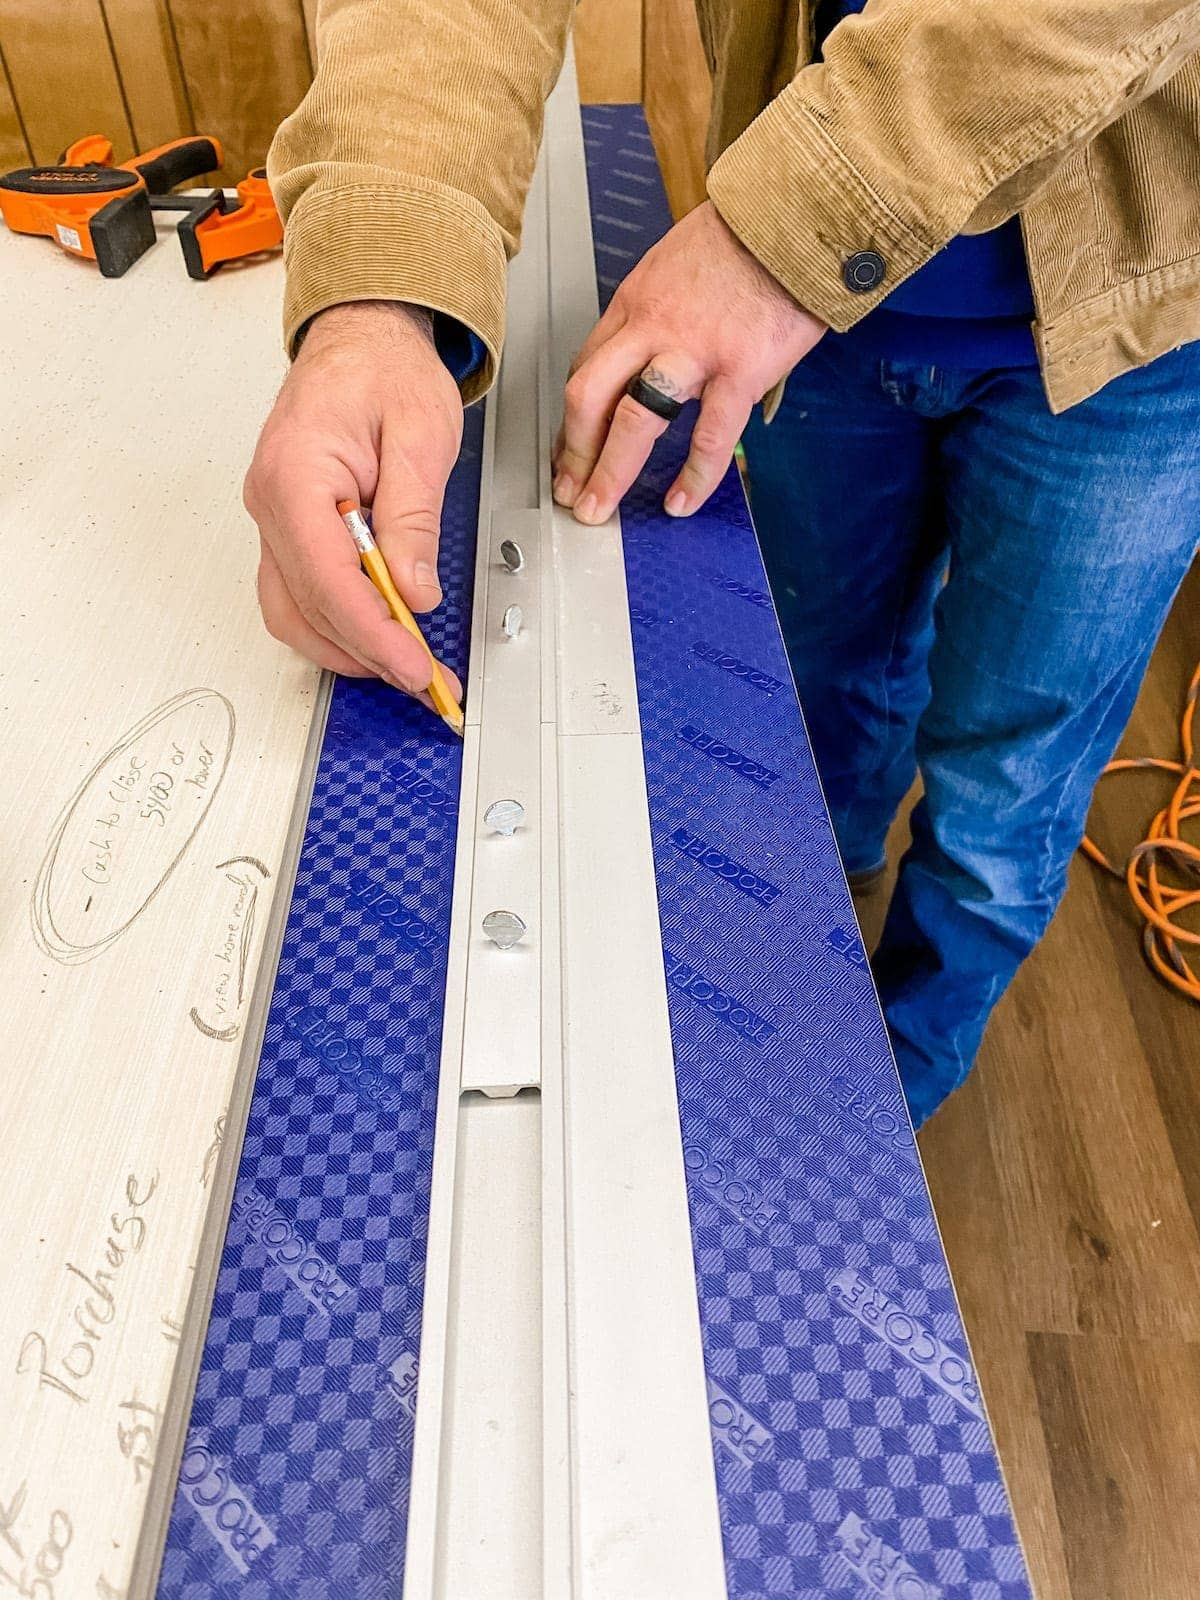 Using a straight edge to cut luxury vinyl plank flooring